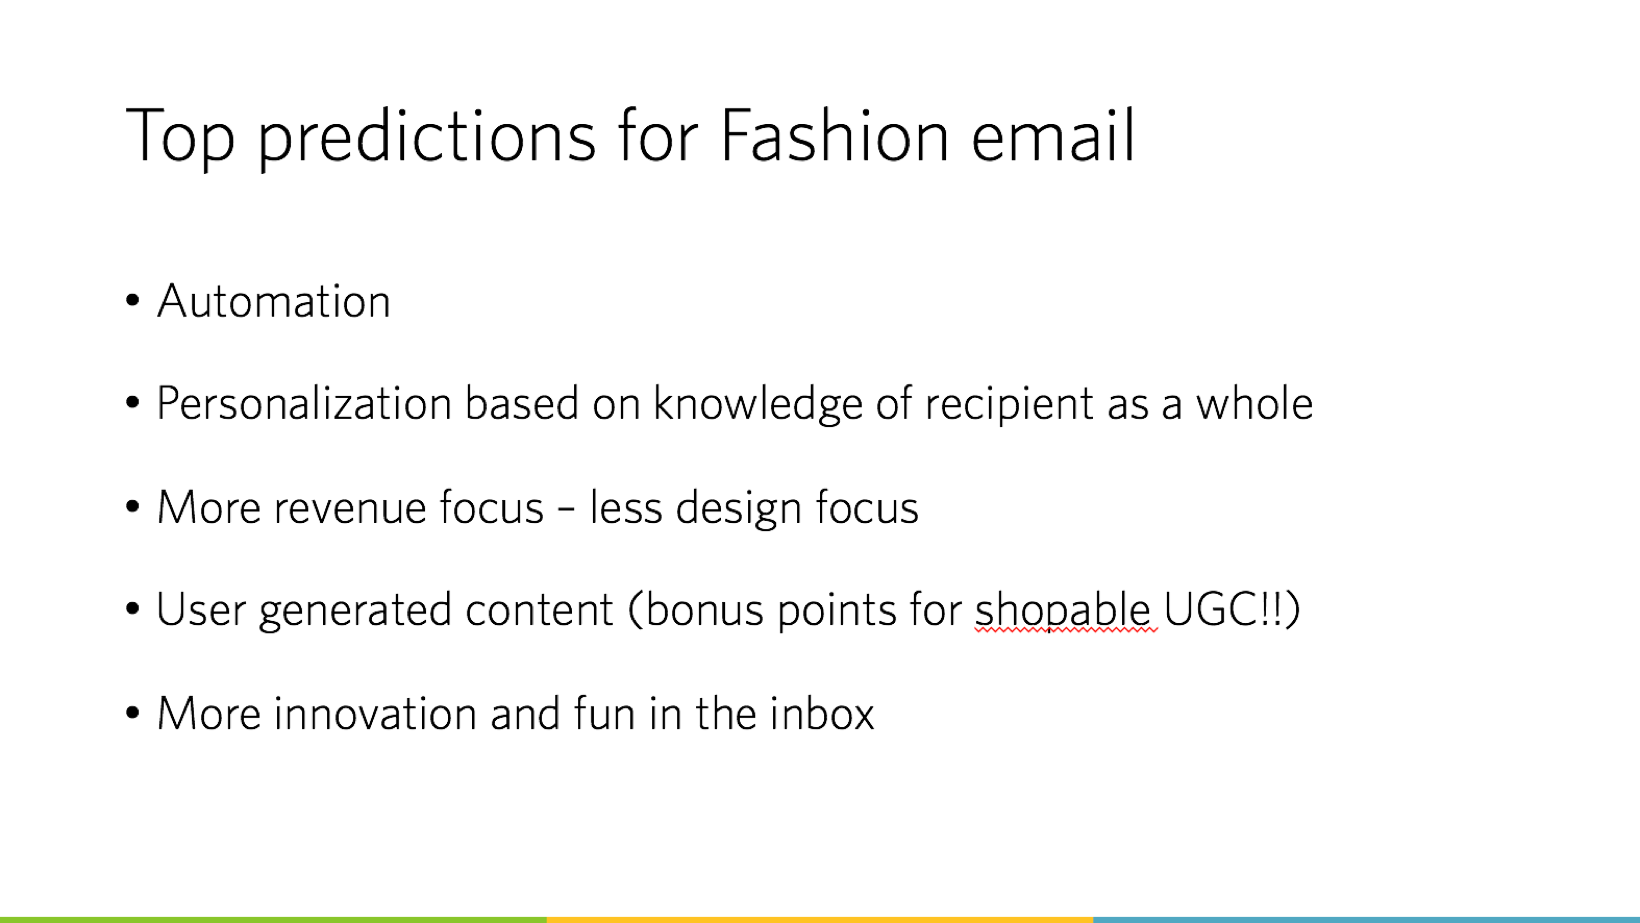 Top predictions for Fashion emails